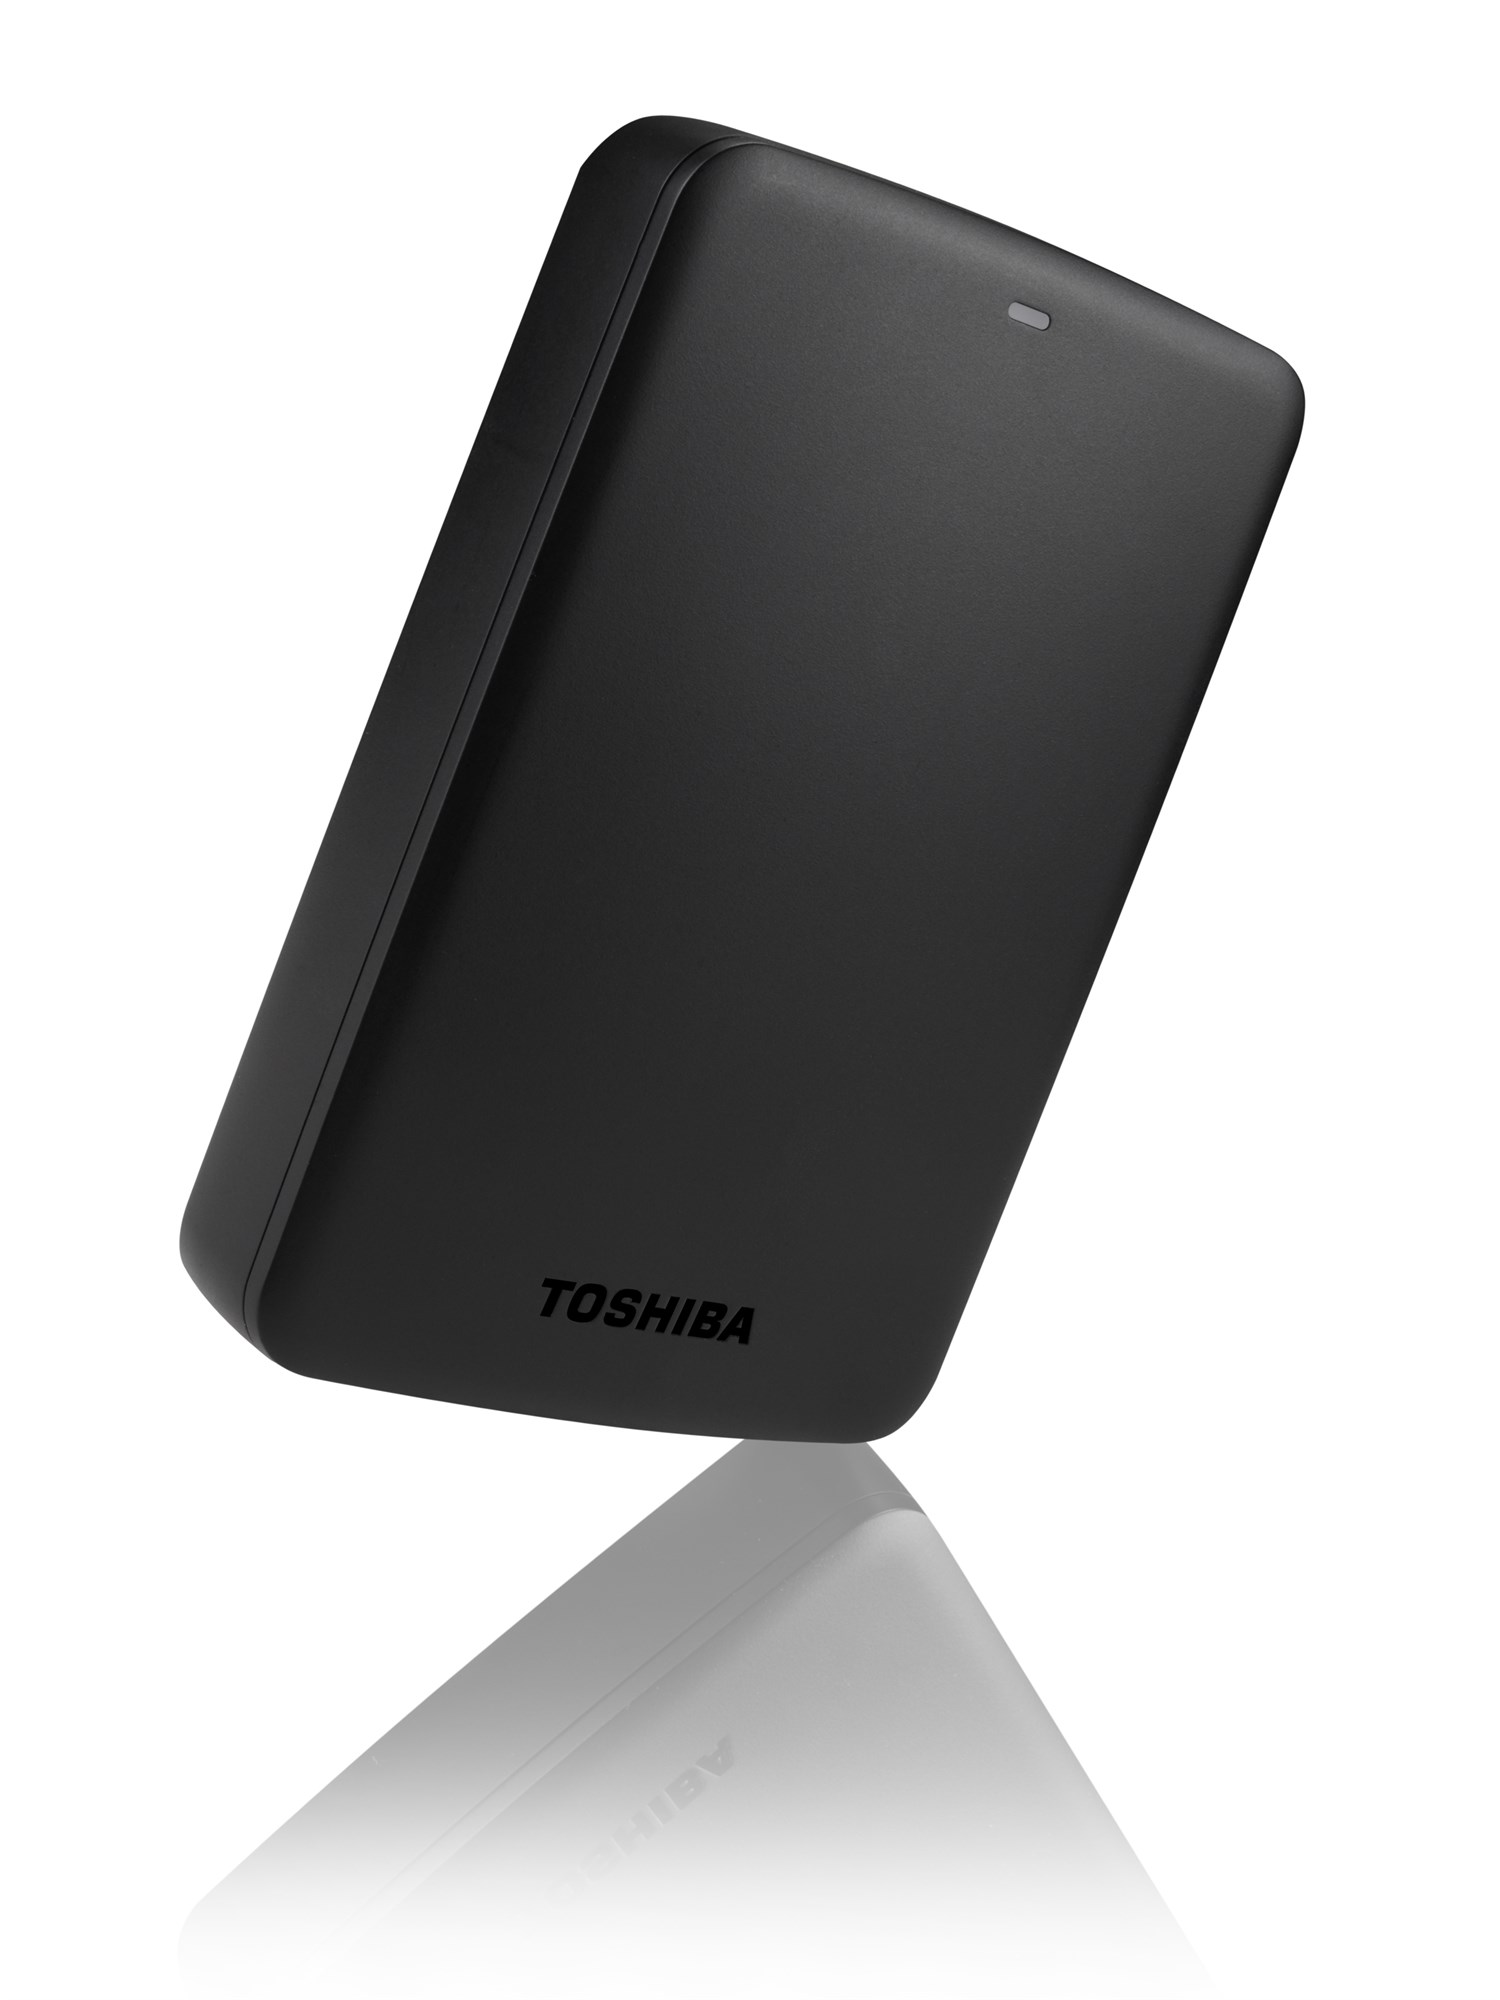 toshiba 2 tb canvio basics usb 3 0 tragbar enxtern. Black Bedroom Furniture Sets. Home Design Ideas